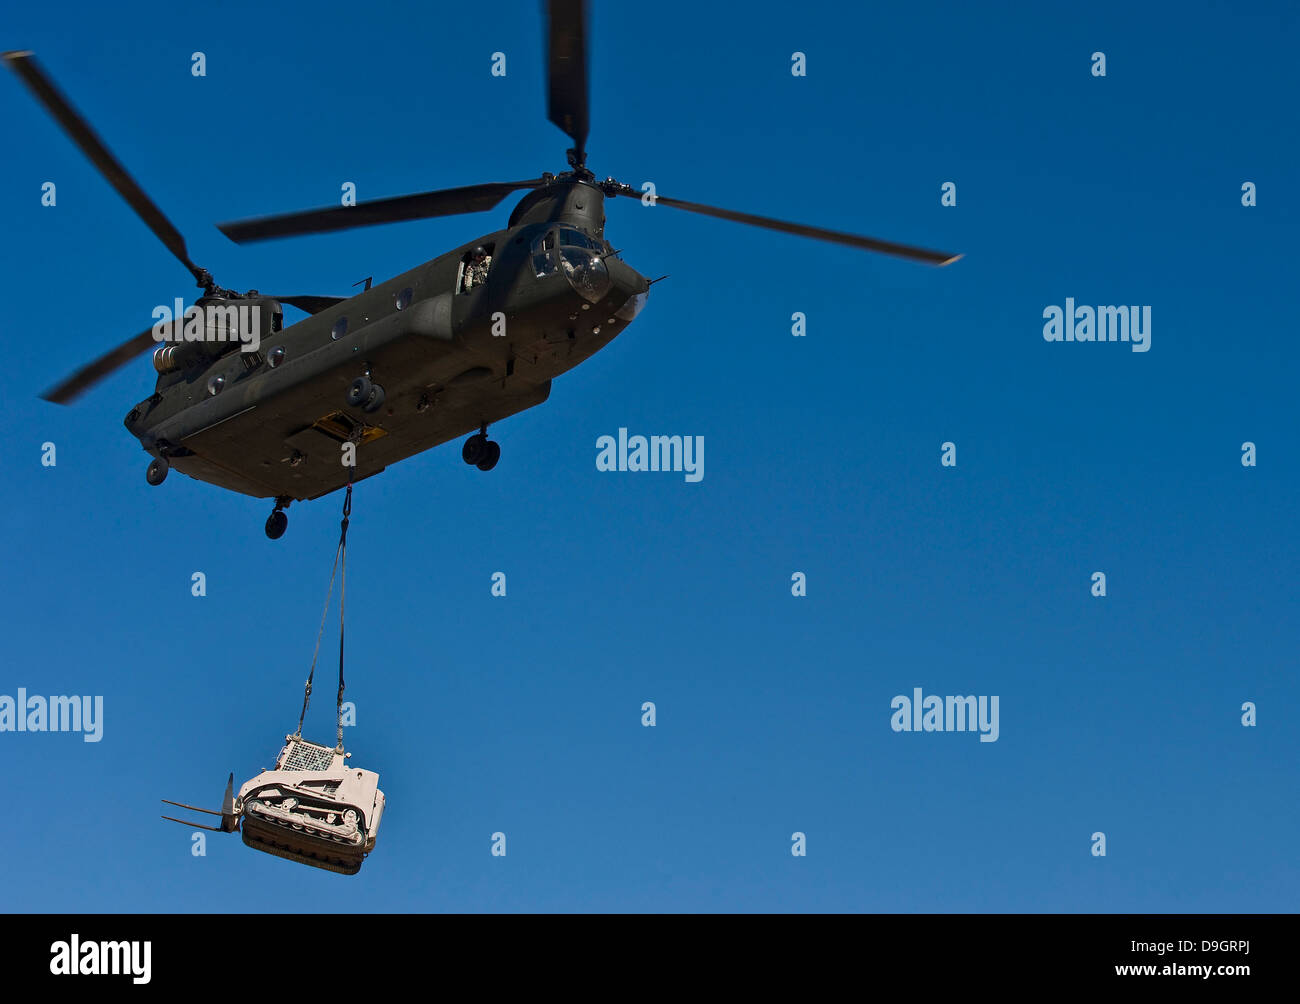 A U.S. Army CH-47 Chinook carries a bulldozer to a drop site. - Stock Image